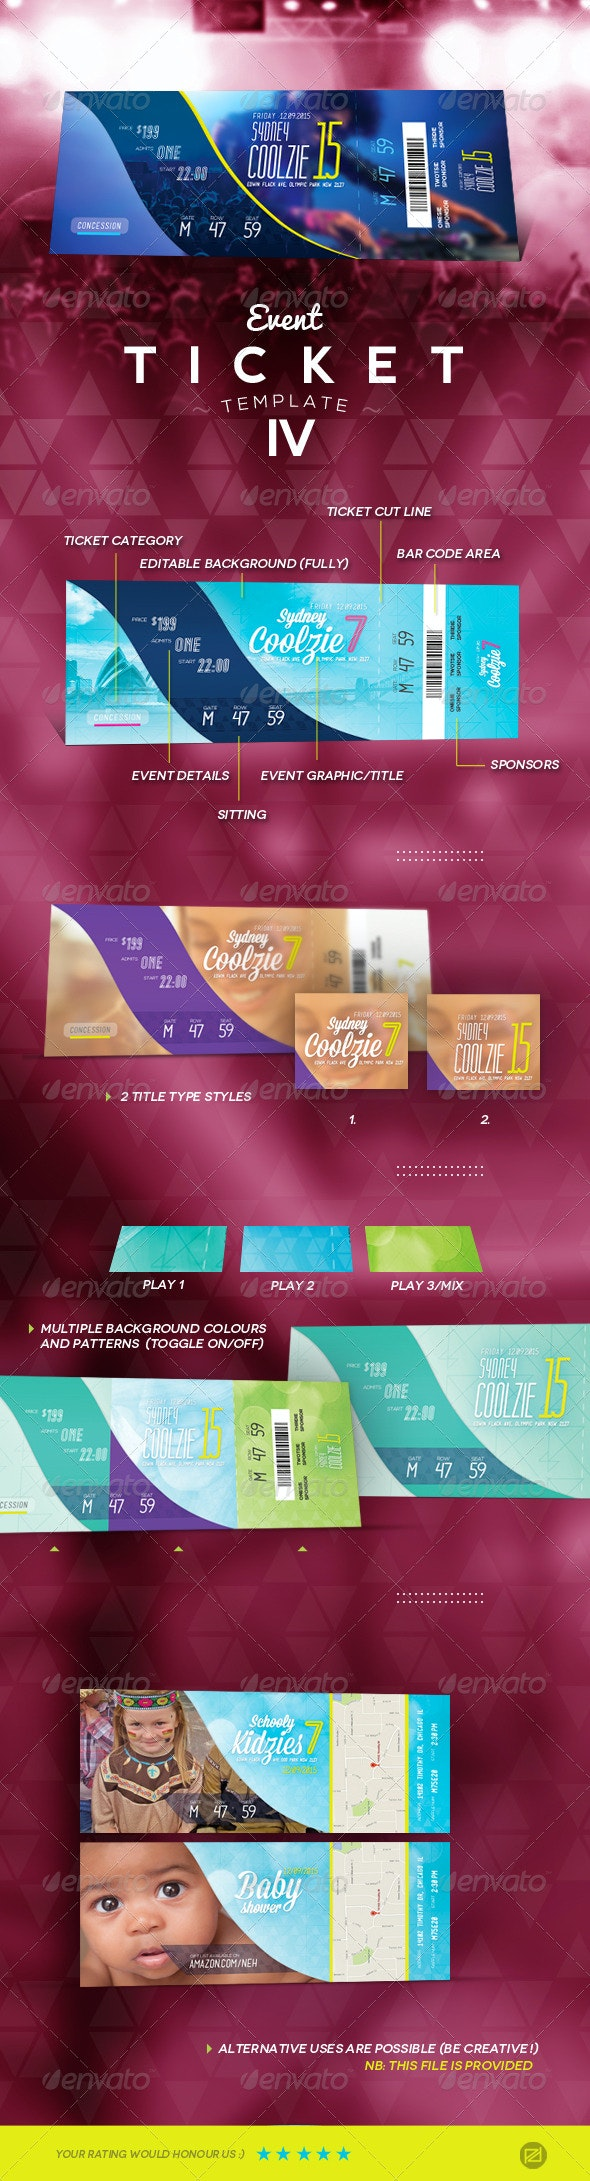 Event Ticket Template IV - Miscellaneous Print Templates